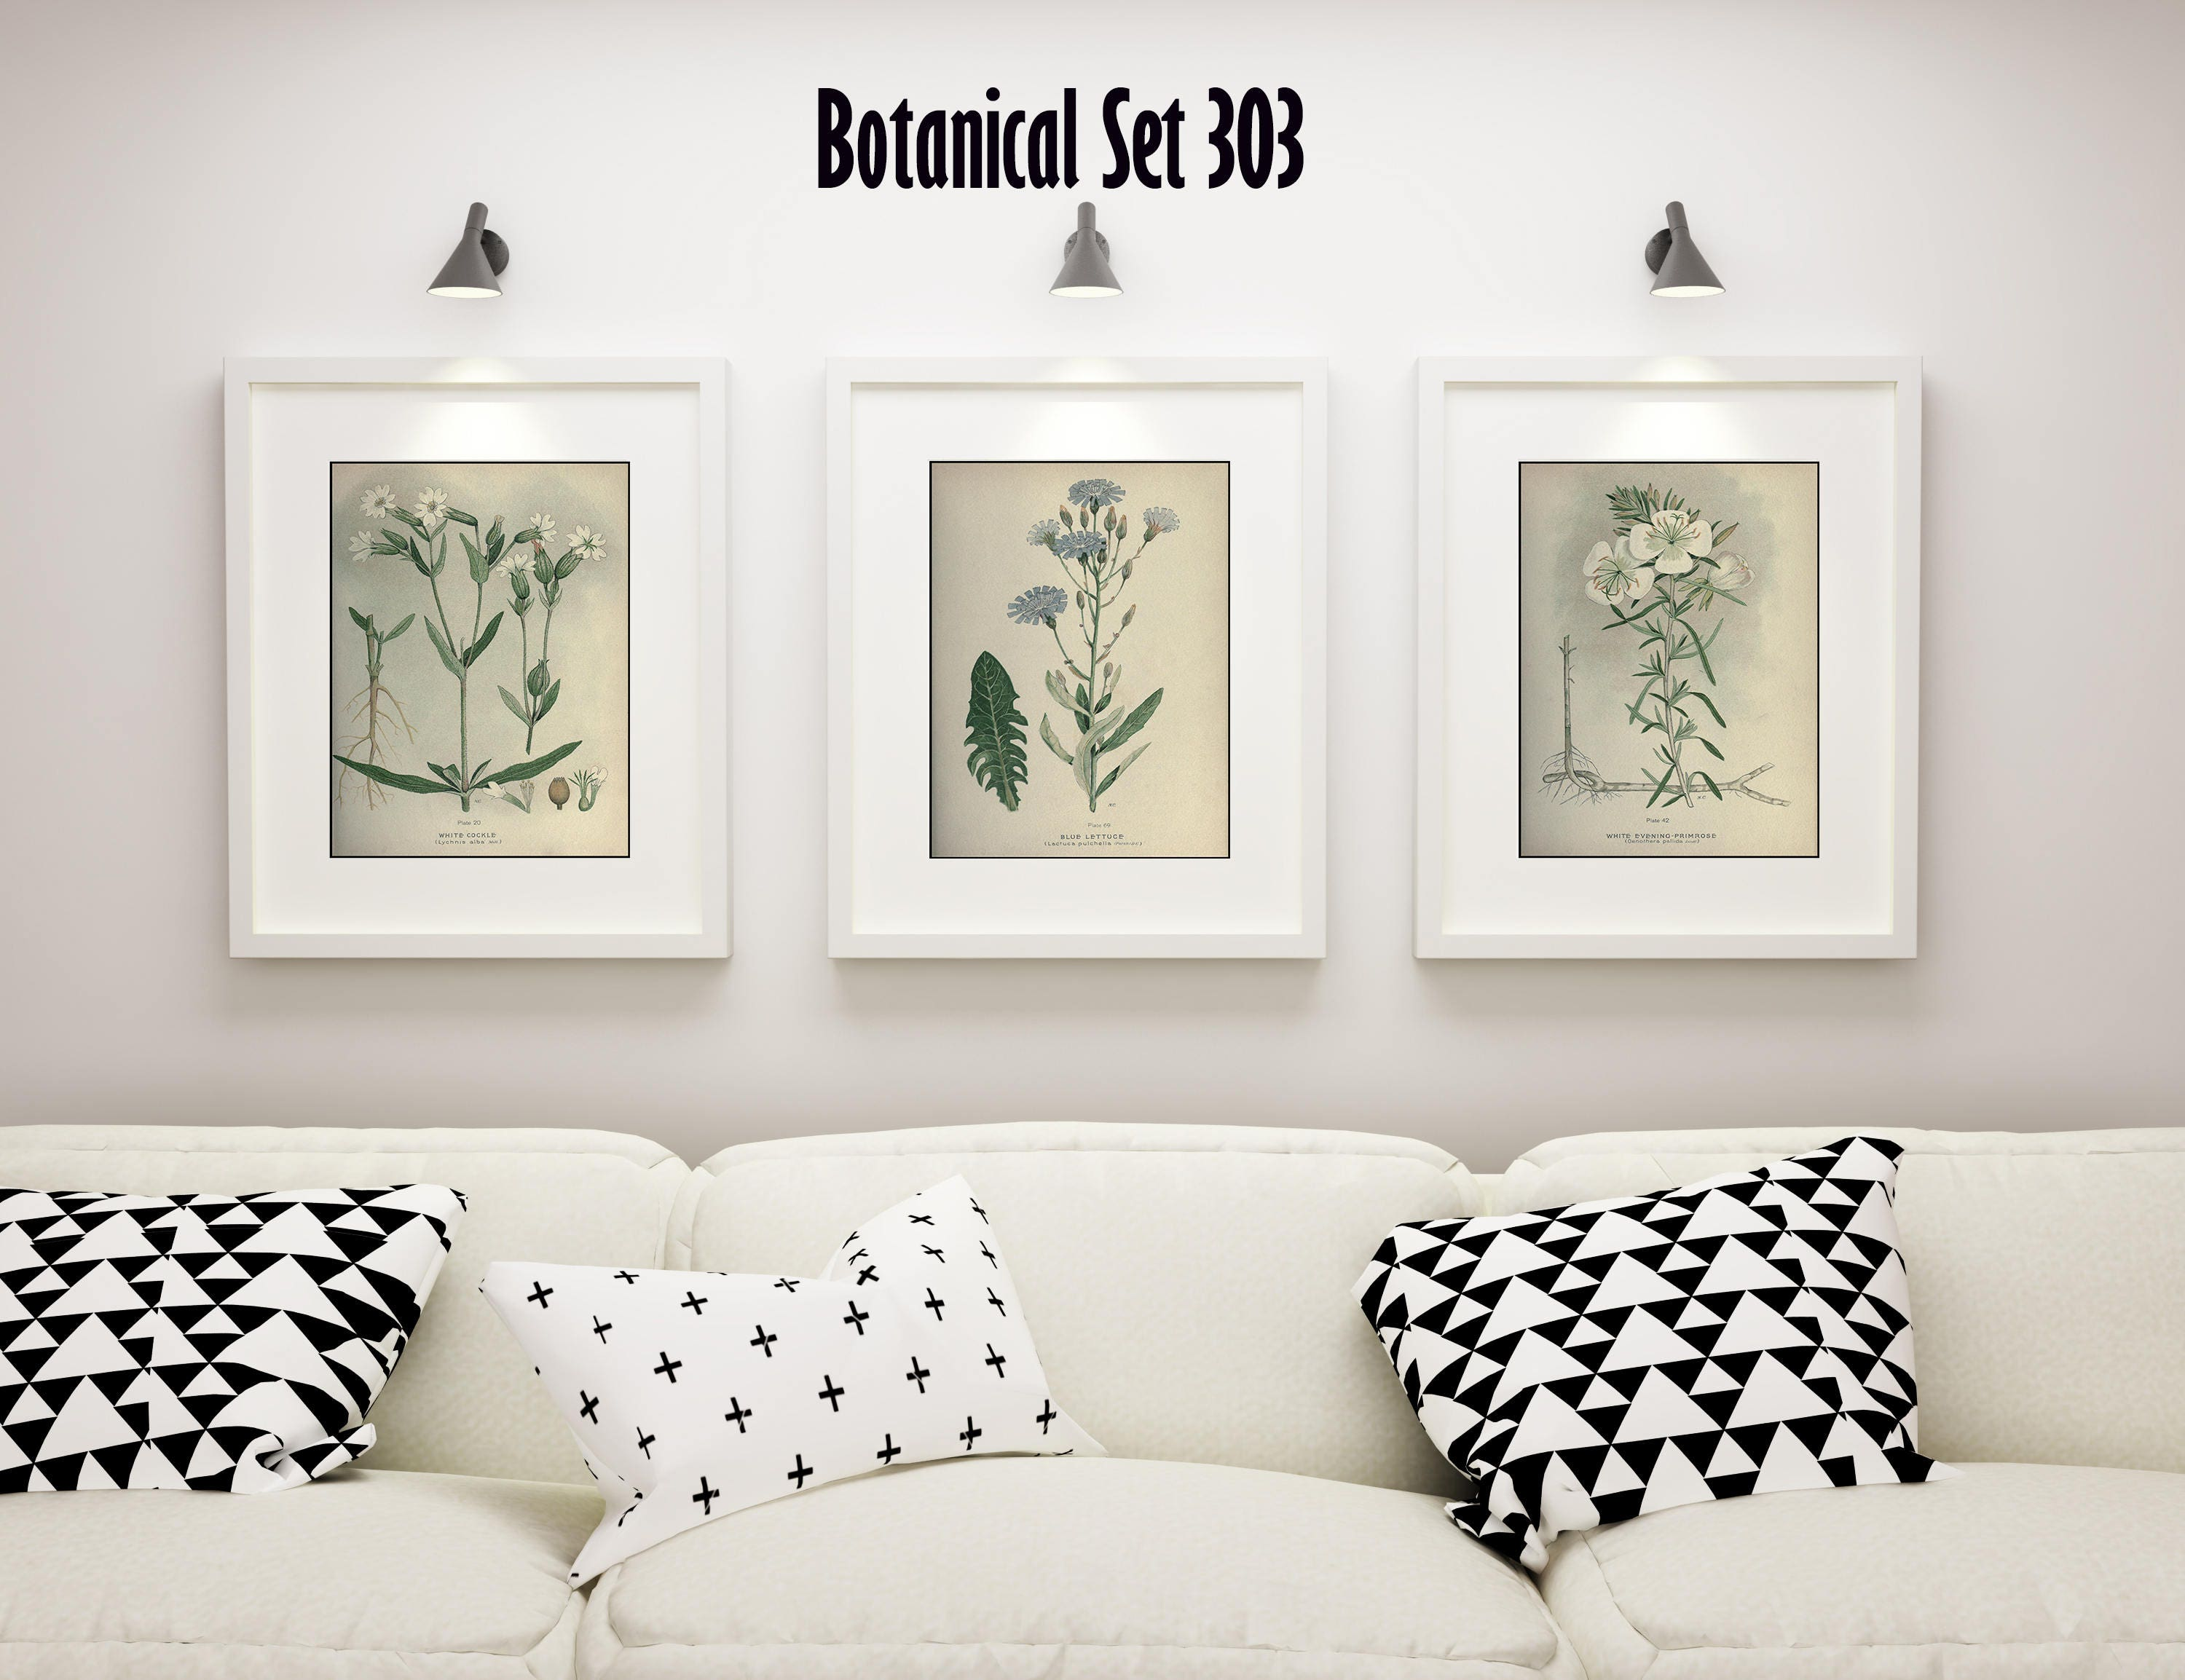 White flower print set of 3 botanical prints antique botanical white flower print set of 3 botanical prints antique botanical white flowers floral wall art bedroom decor botanical illustrations mightylinksfo